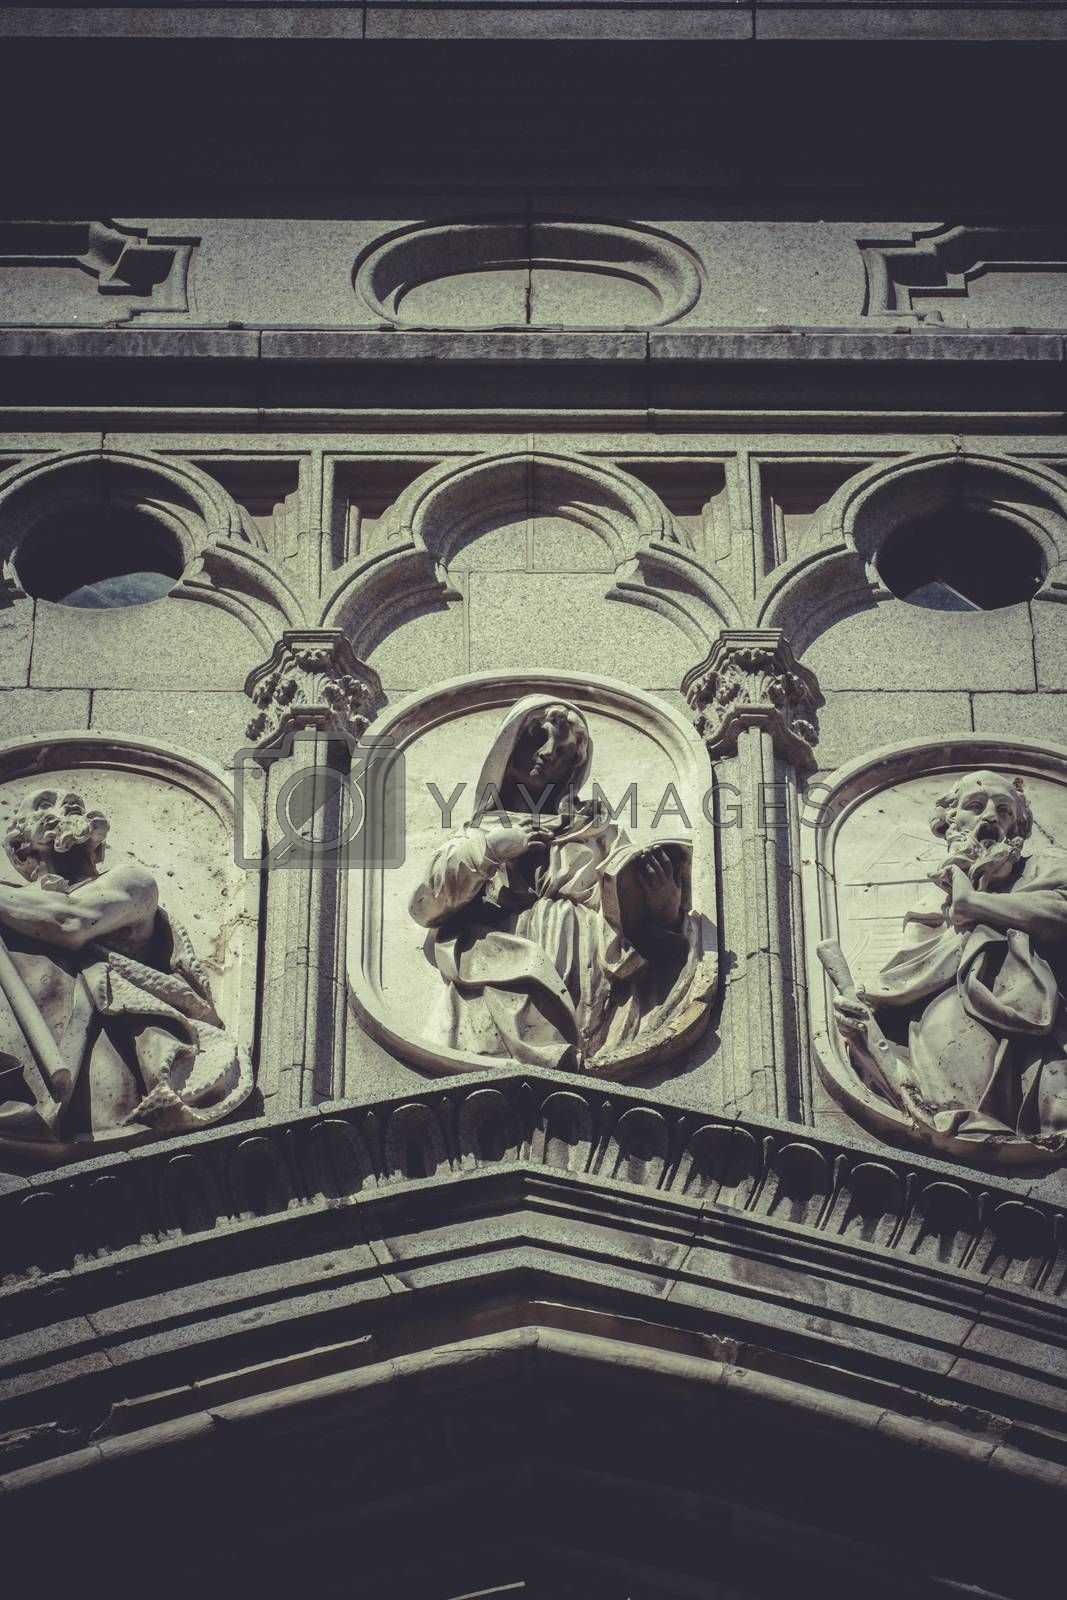 Toledo, imperial city. sculptures on the facade of the Cathedral by FernandoCortes